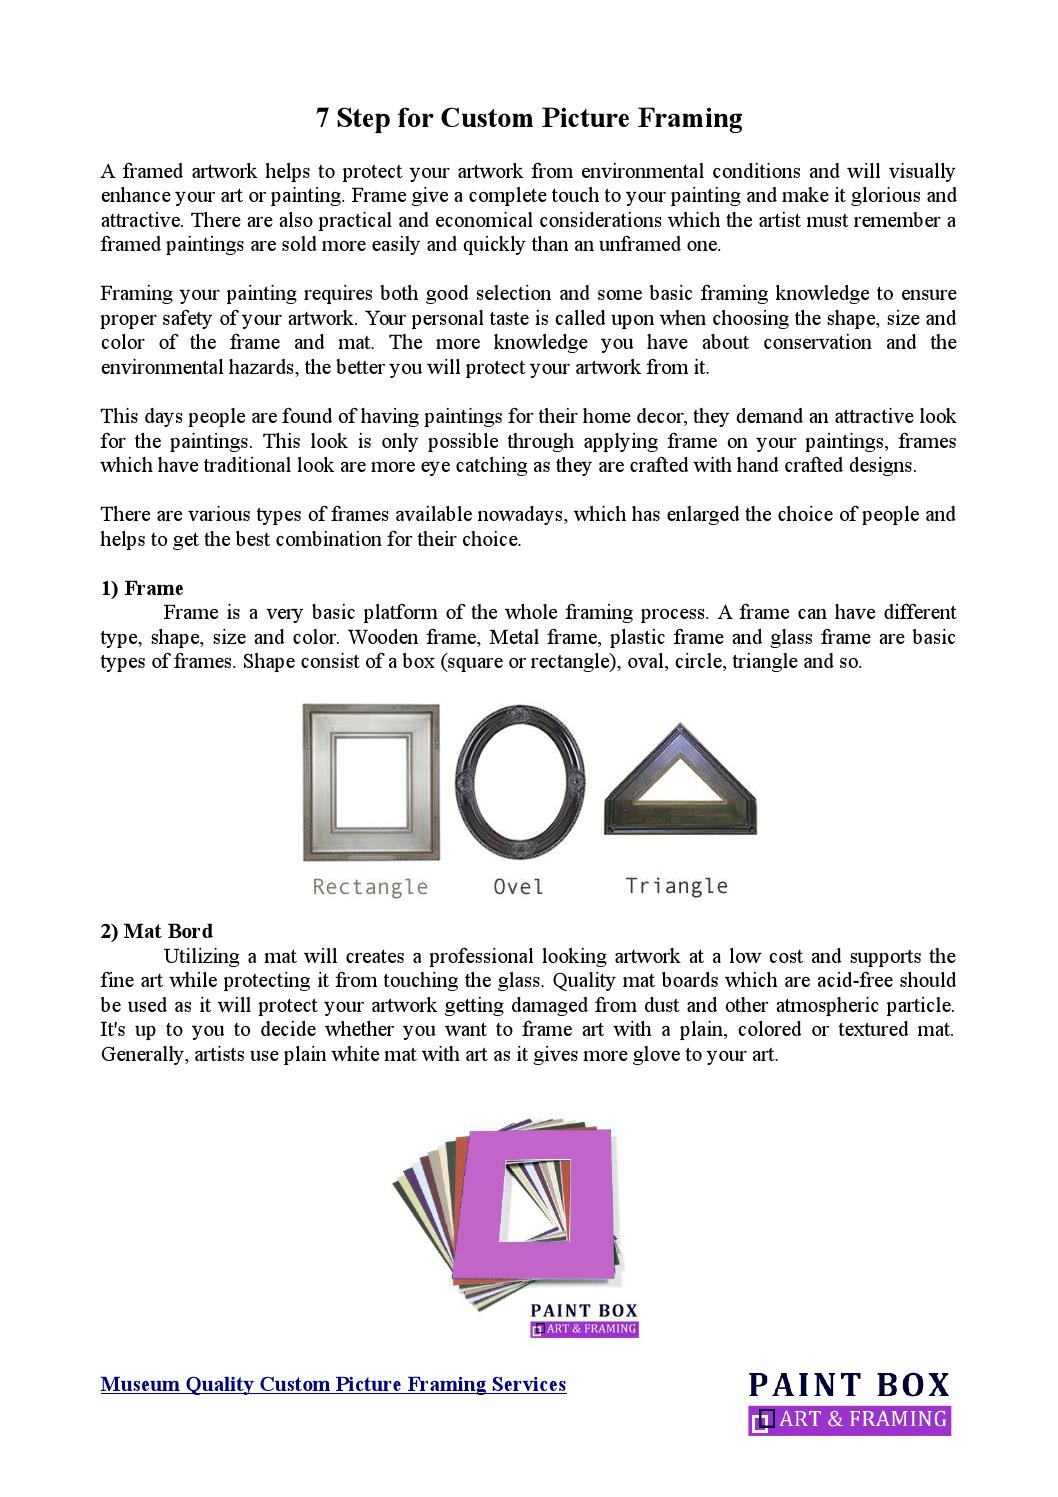 7 step for custom picture framing by PaintboxArtandFraming - issuu